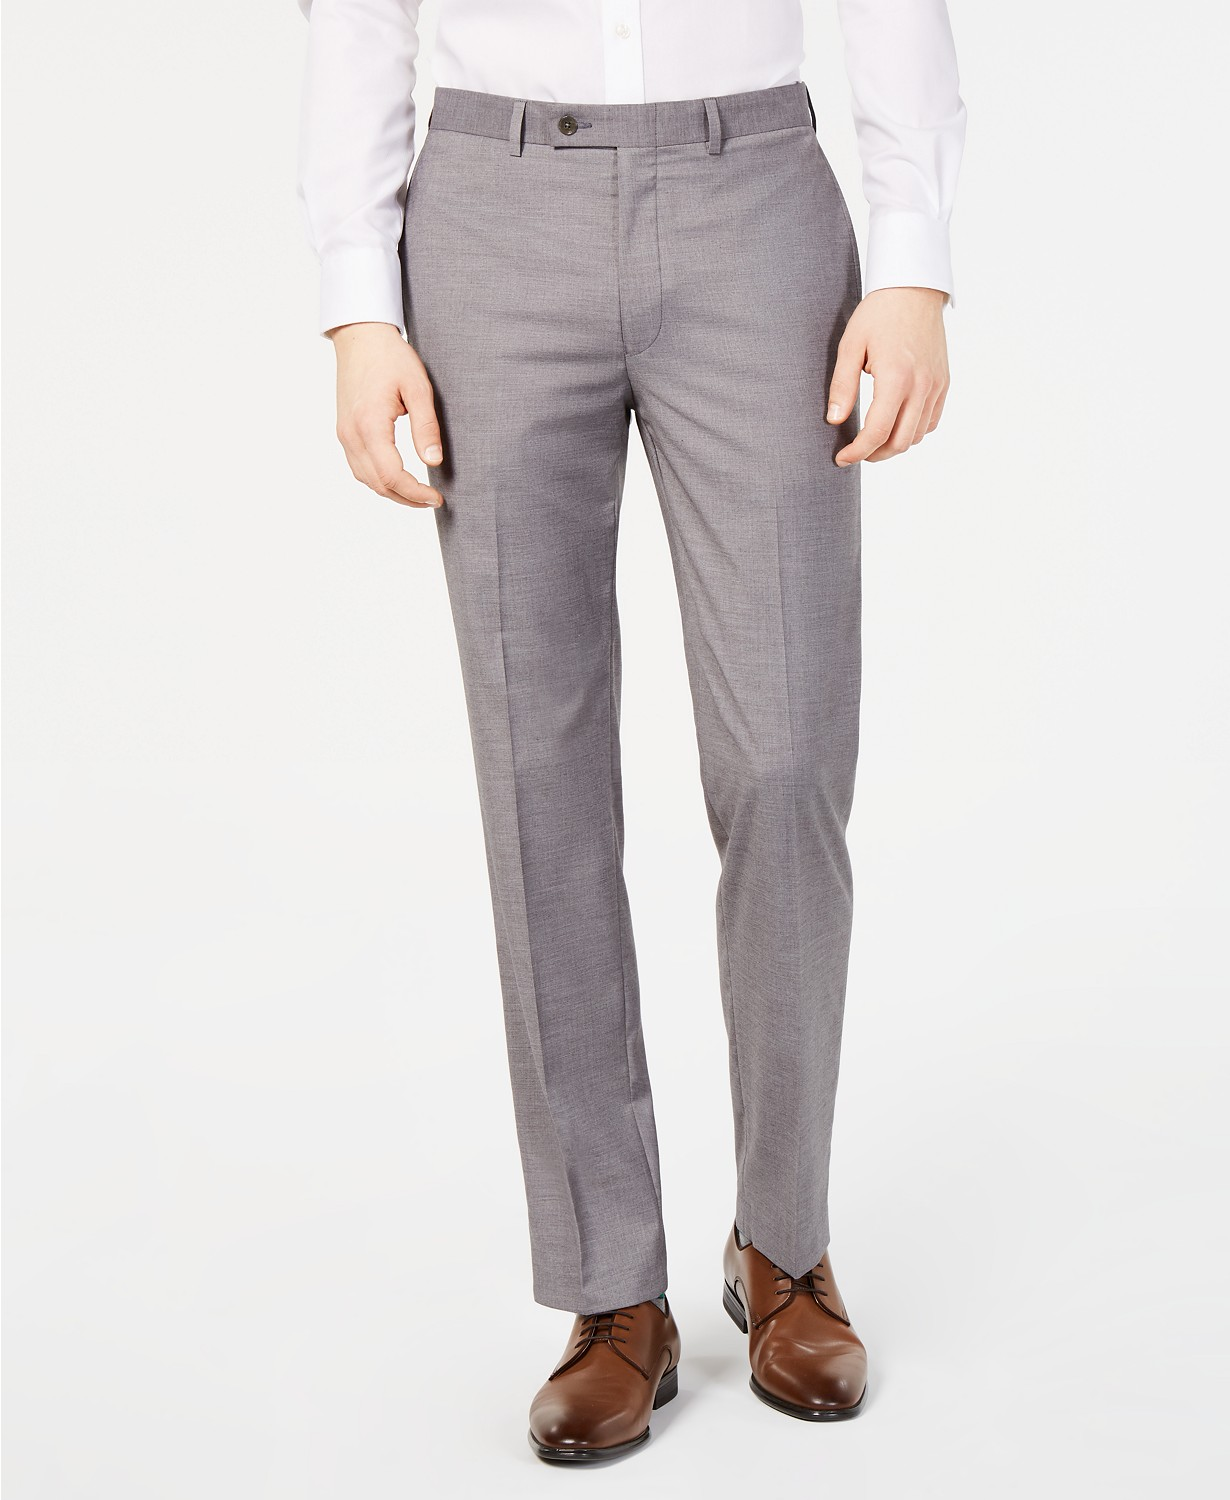 Calvin Klein Men's Slim-Fit Performance Stretch Dress Pants